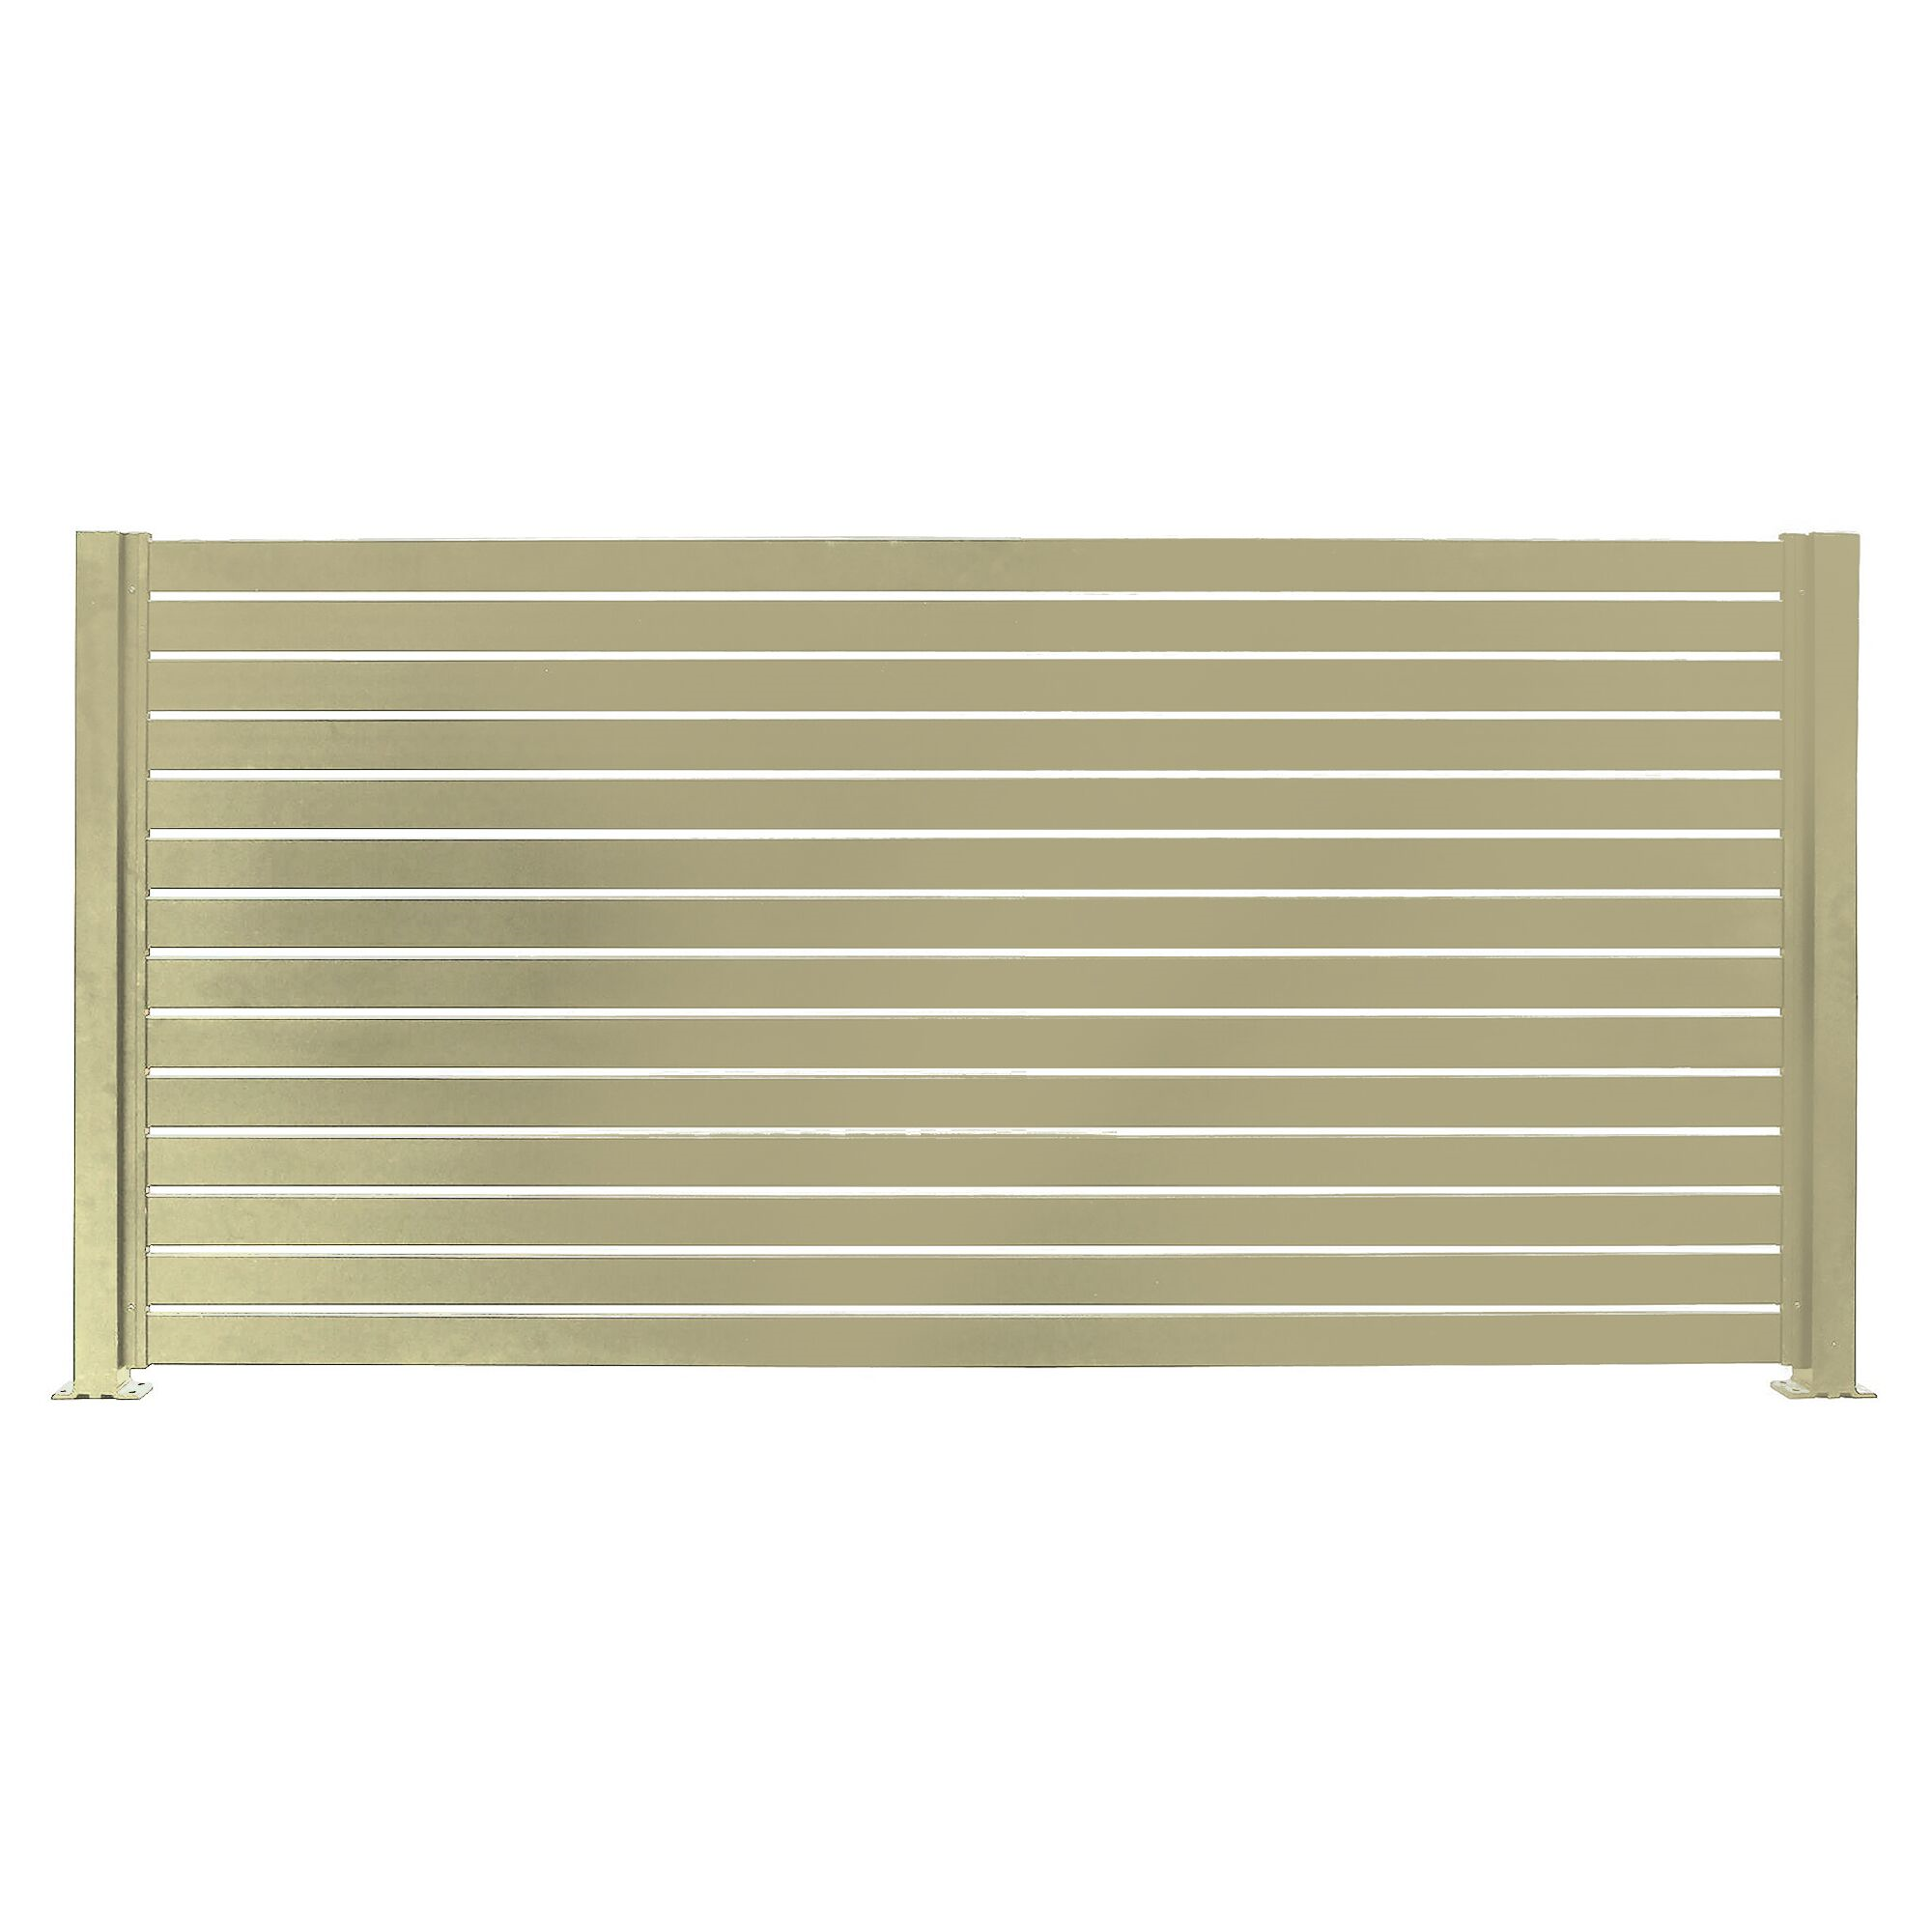 Free 2 Day Shipping Buy Quick Screen Slat Fencing Beige At Walmart Com Fence Panels Metal Fence Panels Fence Slats